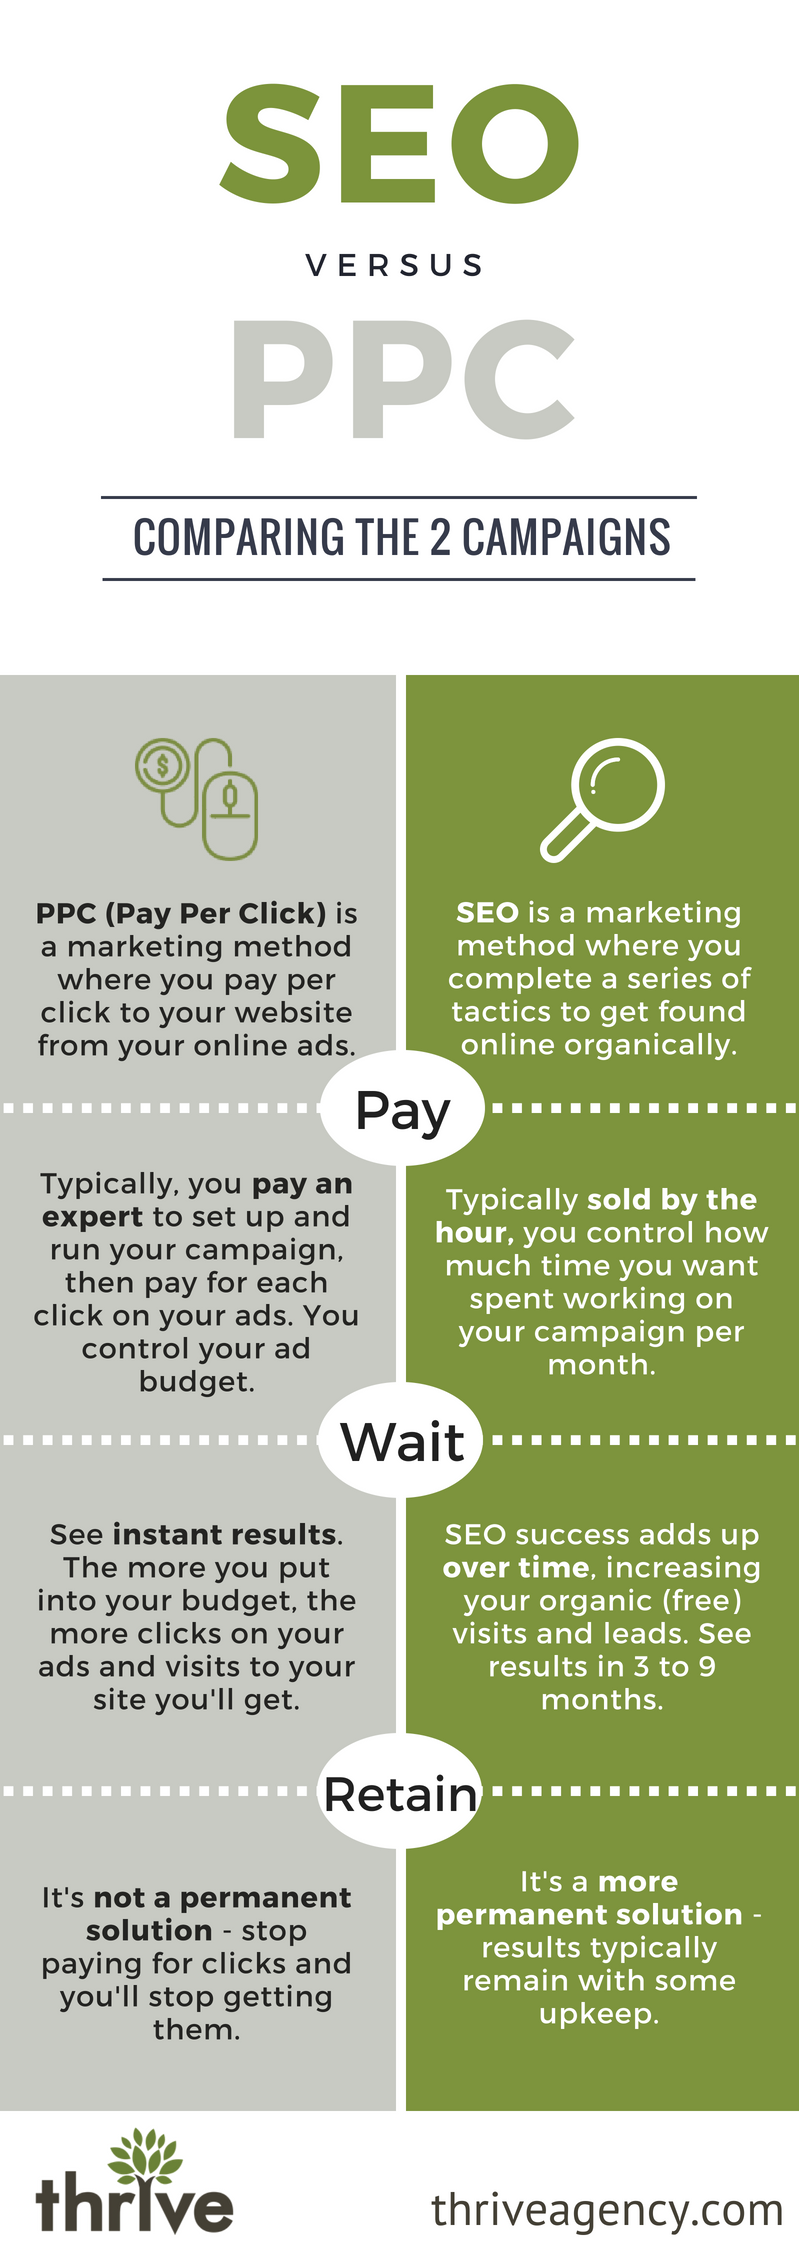 SEO vs. PPC: Which one is right for your website?